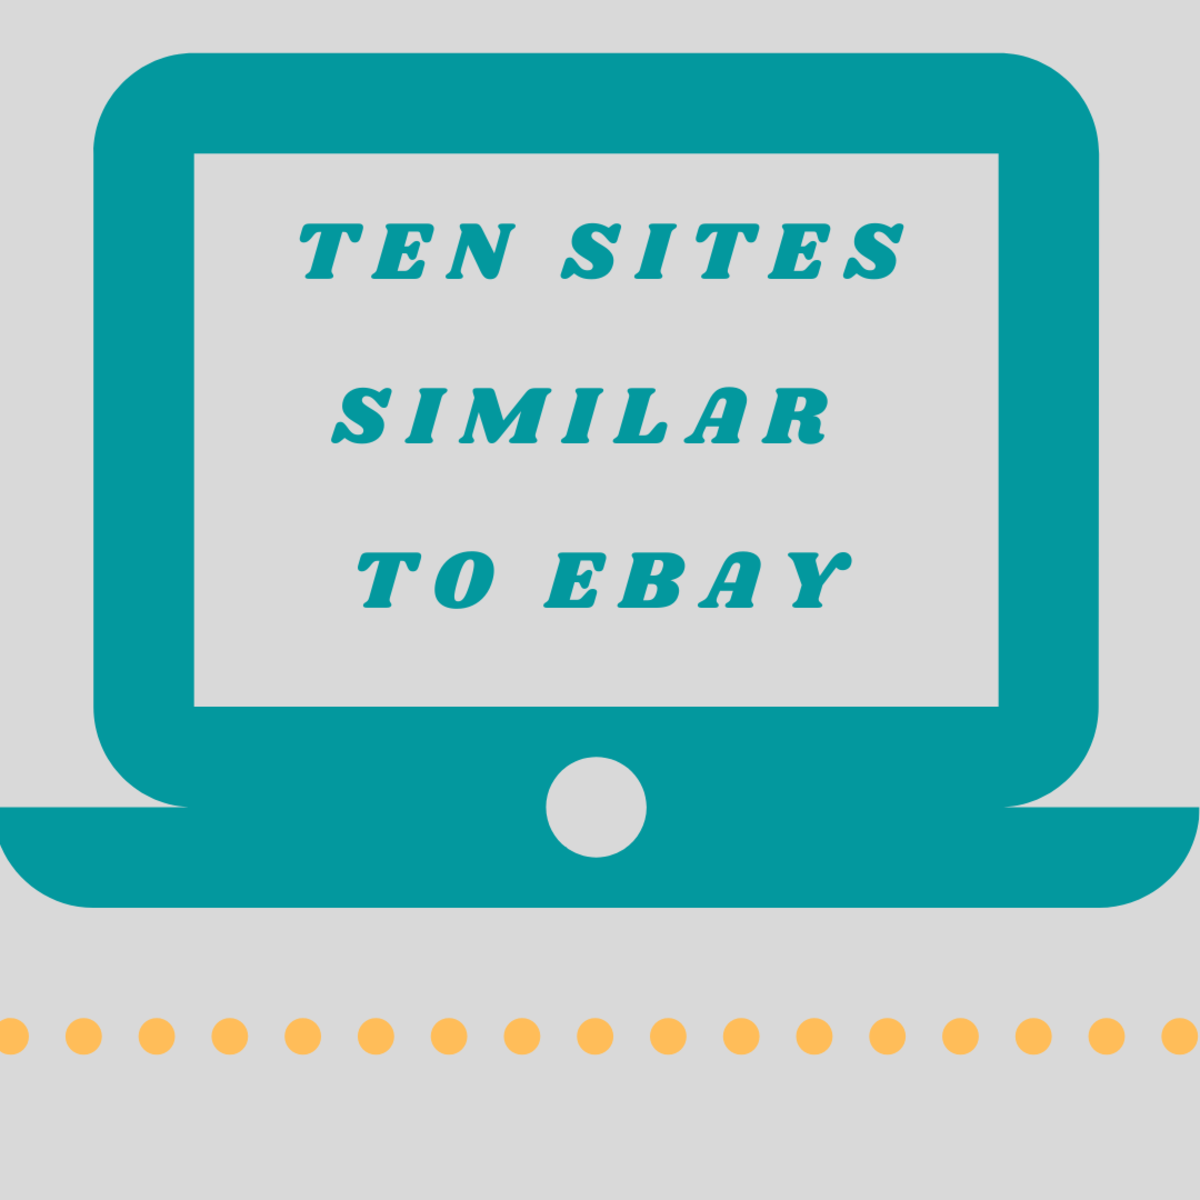 eBay isn't the only site that can earn you extra money. Check out these sites to learn ways to make extra cash.